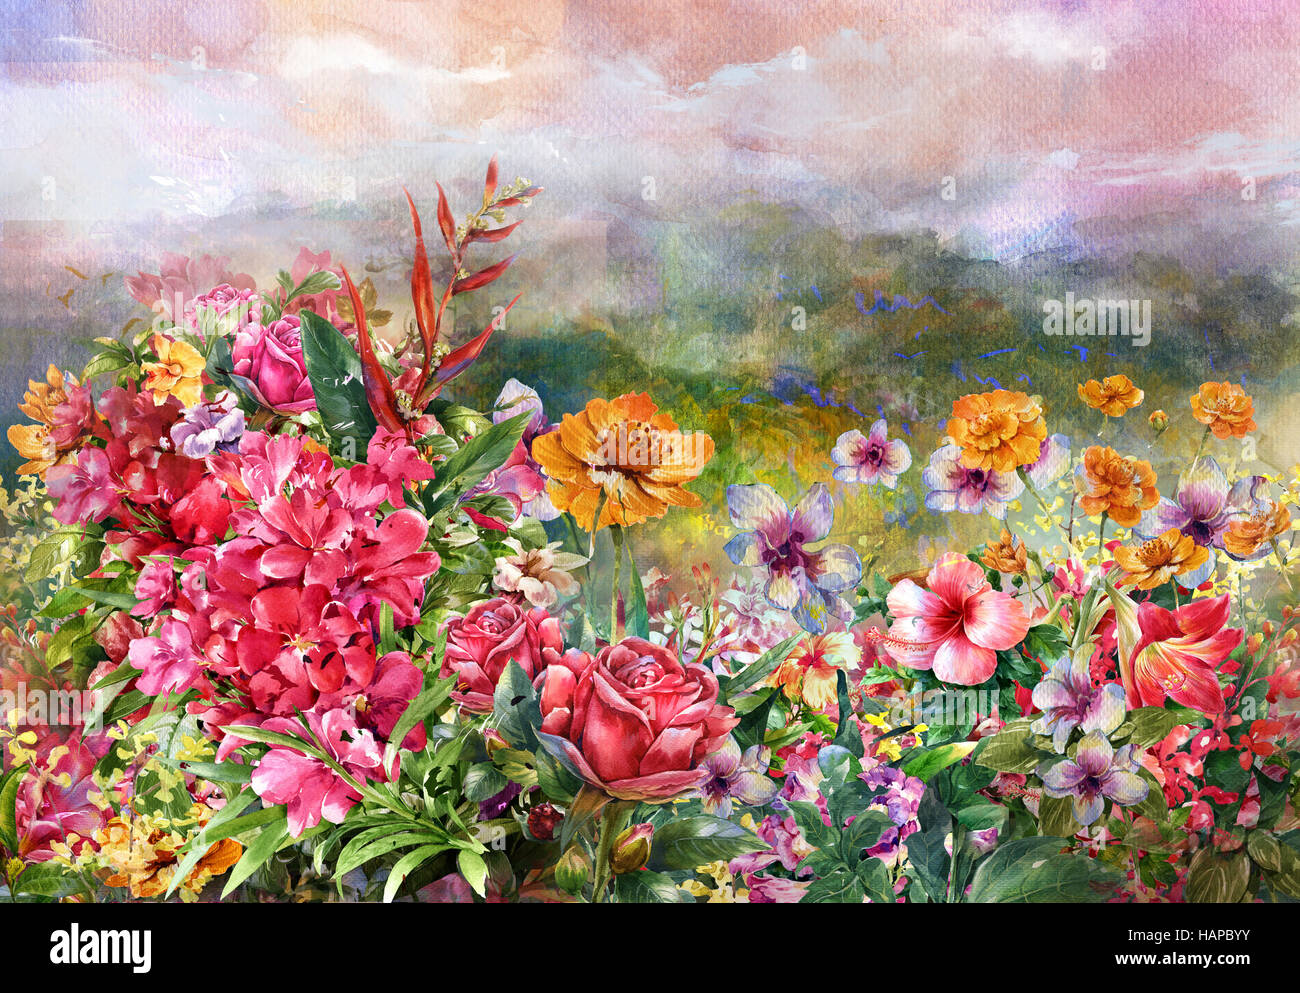 Paysage de fleurs multicolores style aquarelle. Photo Stock